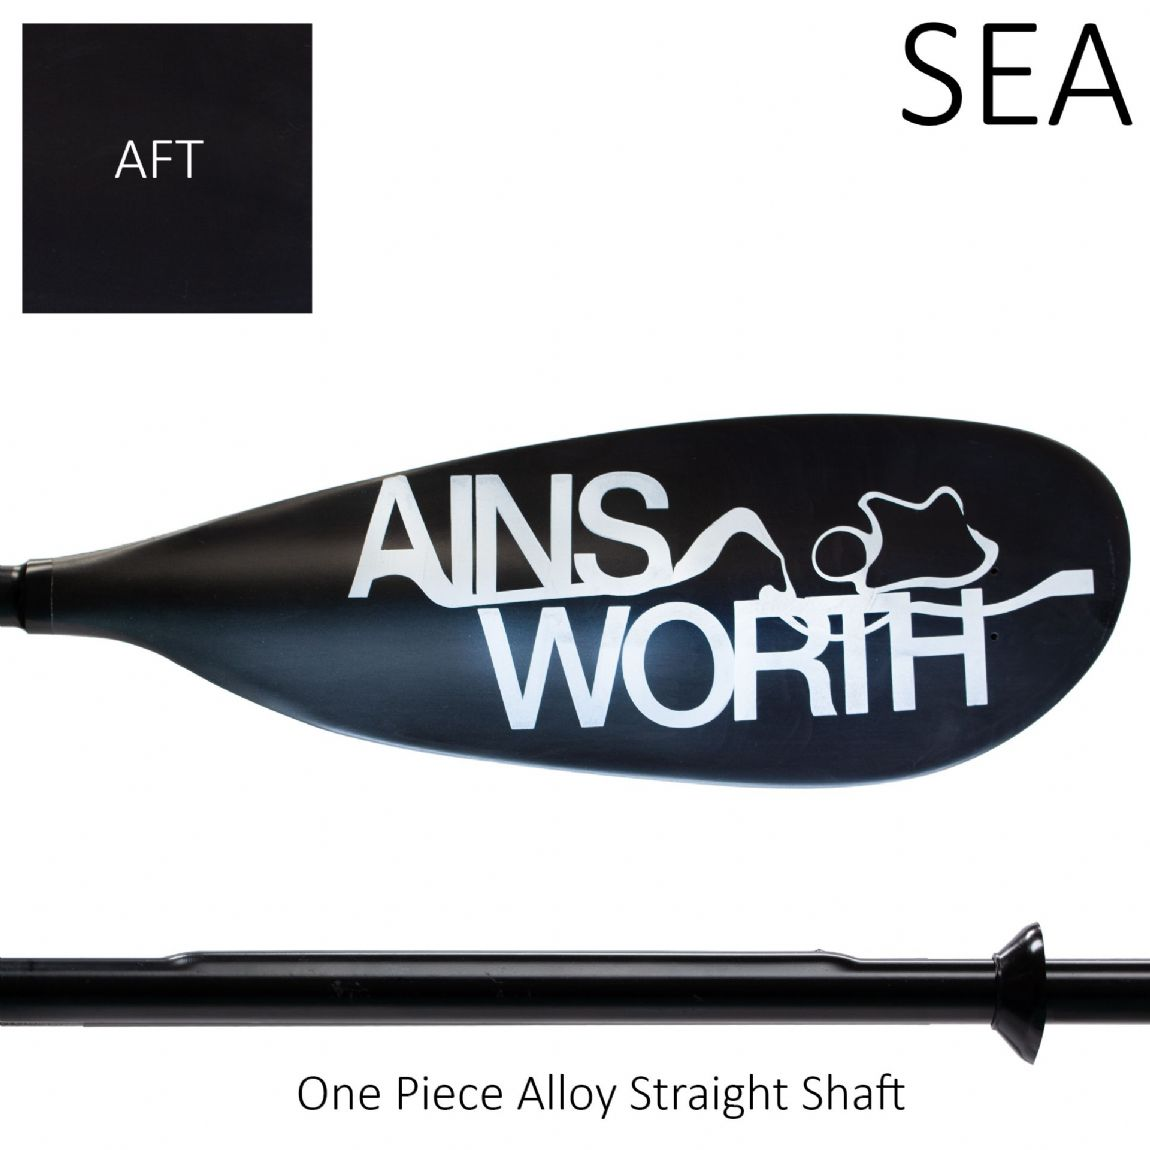 SEA (AFT) One Piece Alloy